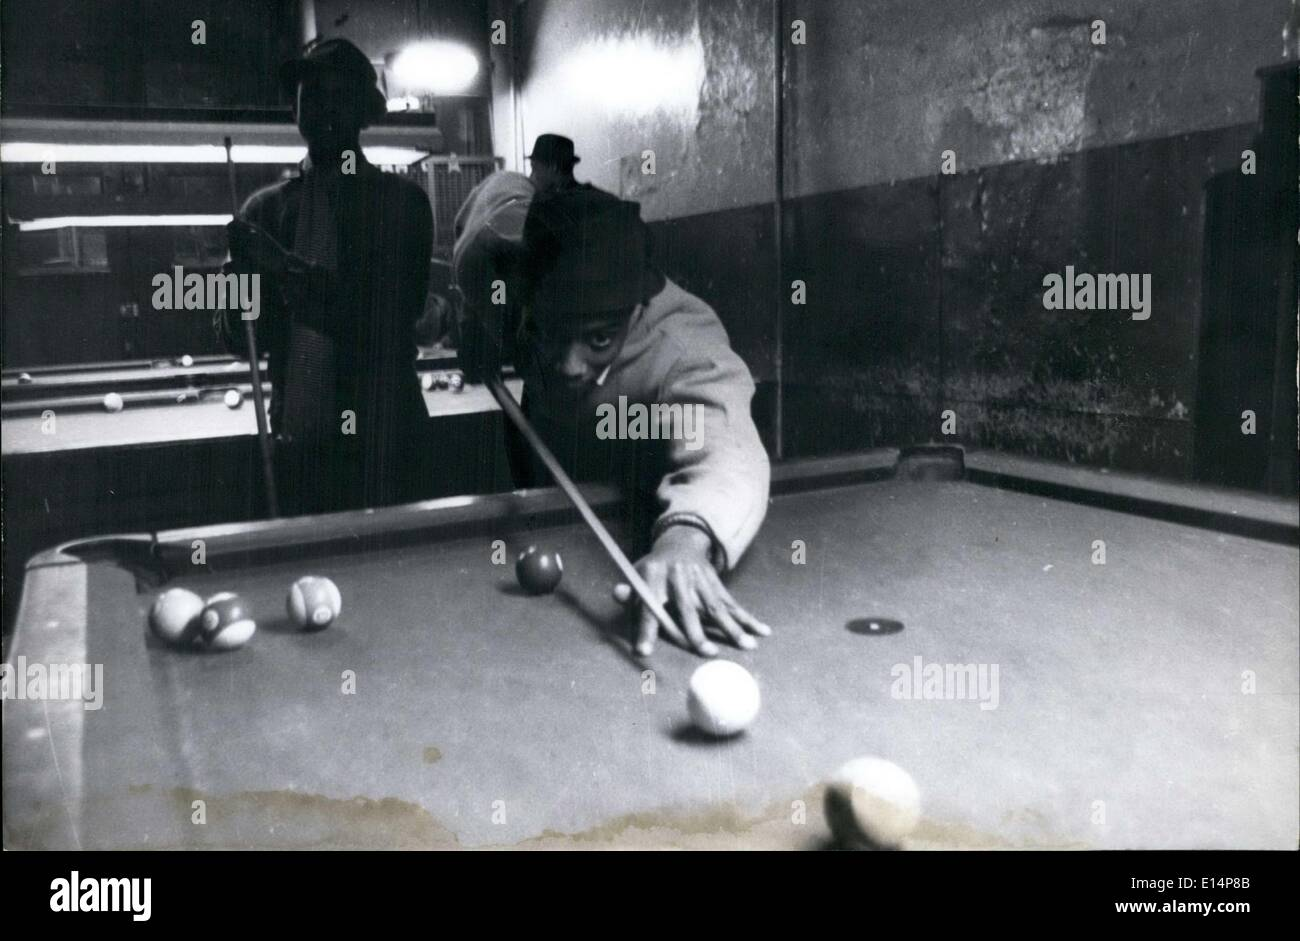 Apr. 12, 2012 - These men meet in a local billiards room and play pool while they chat about politics and other things. - Stock Image